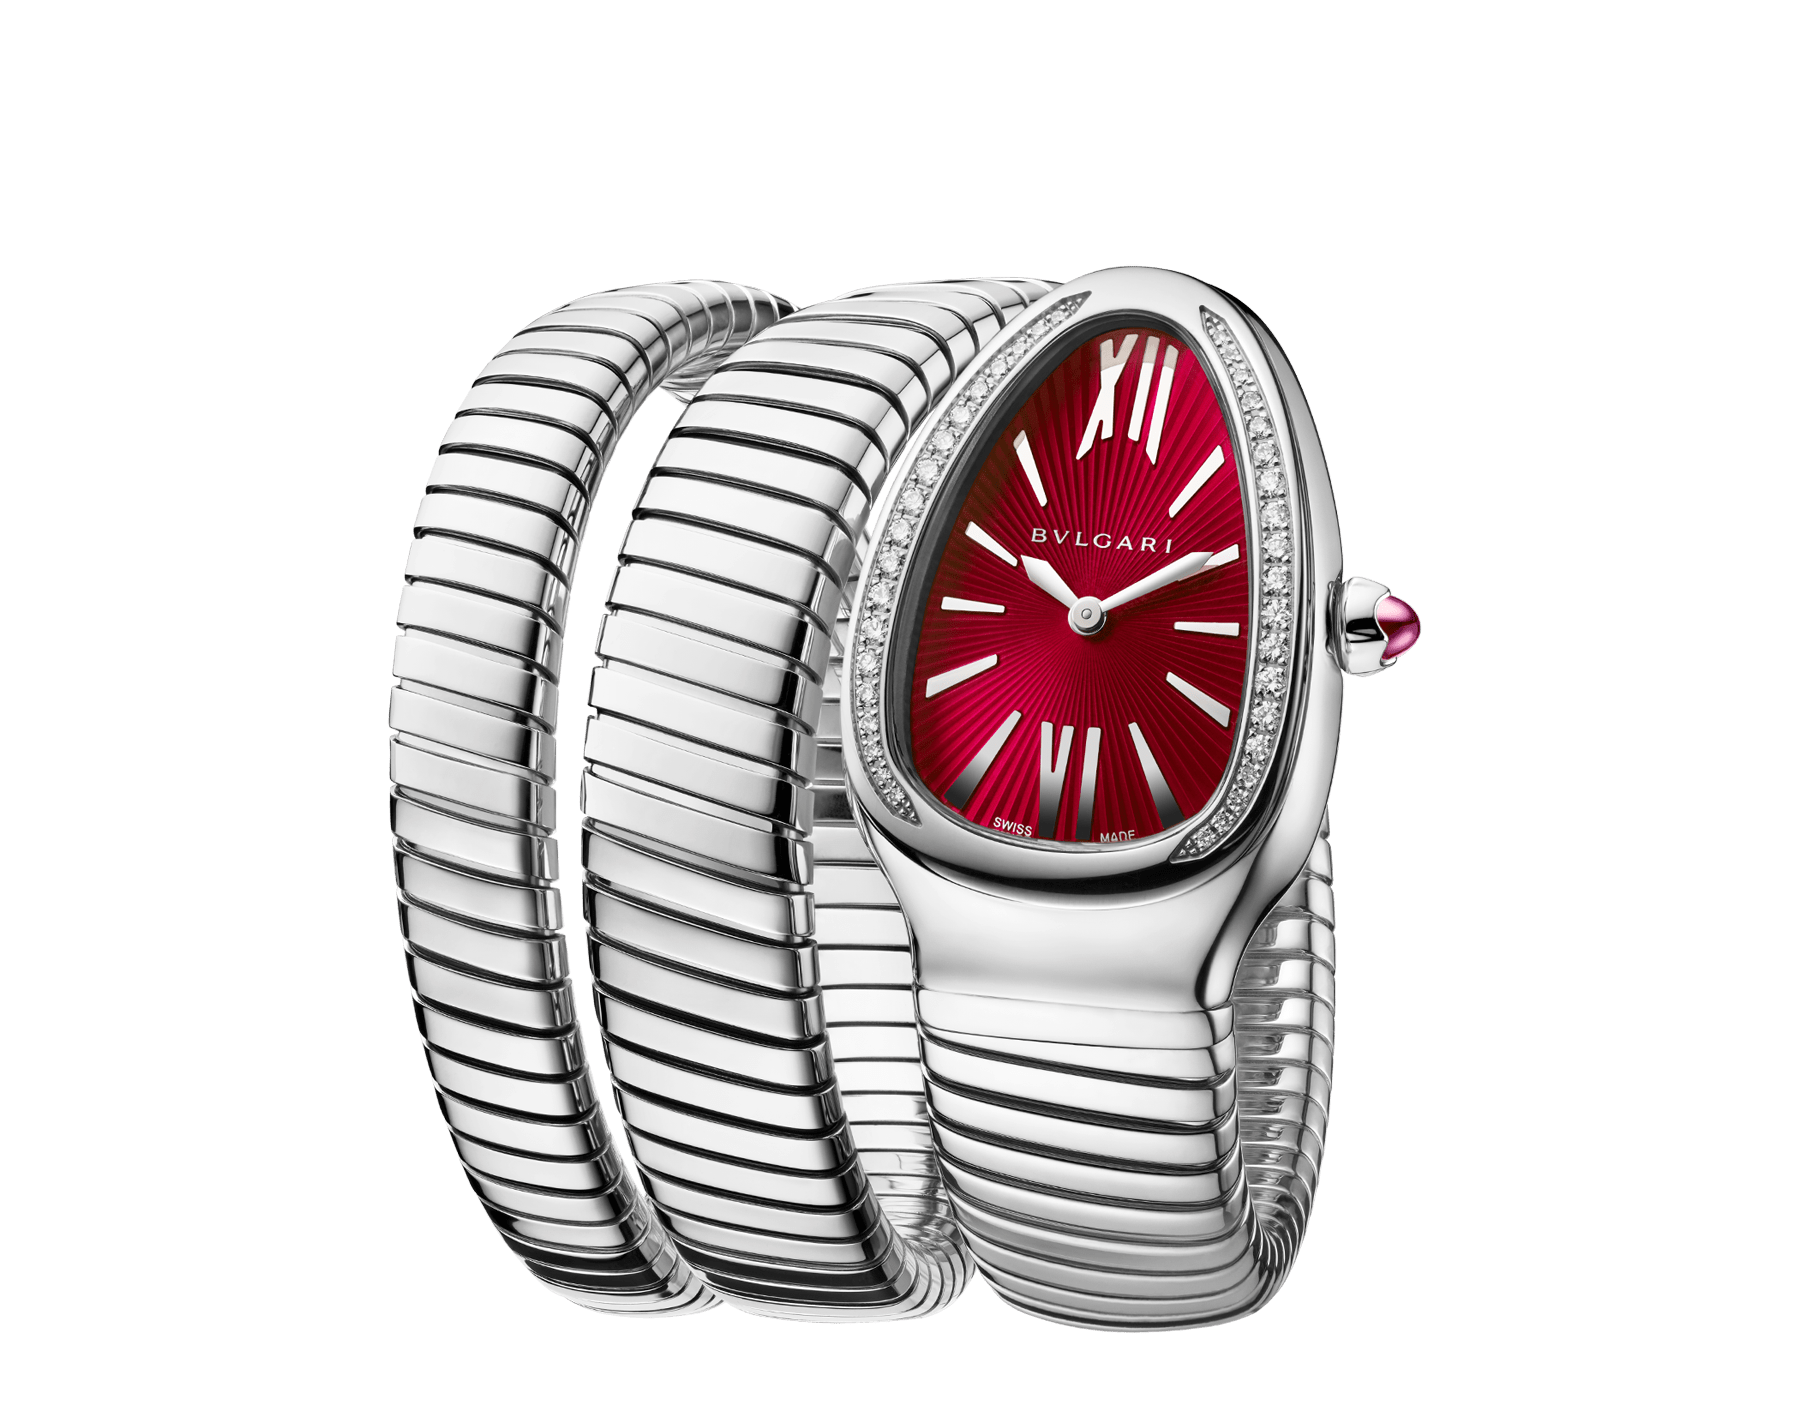 Serpenti Tubogas double spiral watch with stainless steel case set with brilliant cut diamonds, red lacquered dial and stainless steel bracelet. 102682 image 2